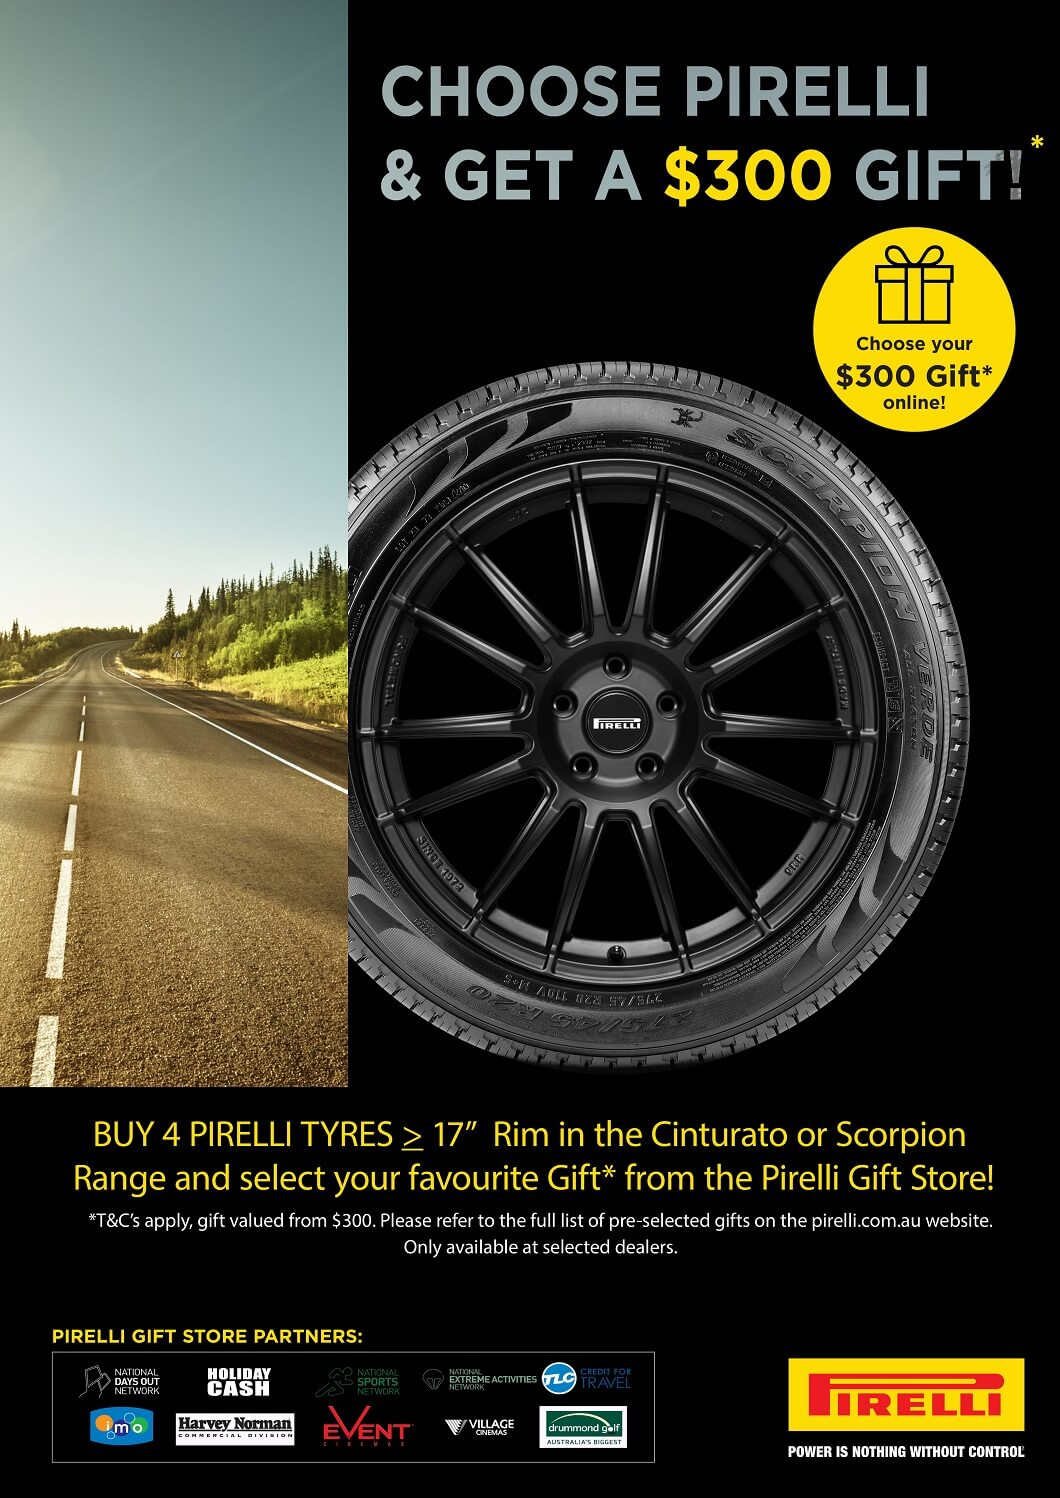 Choose Pirelli and get a $300 gift!